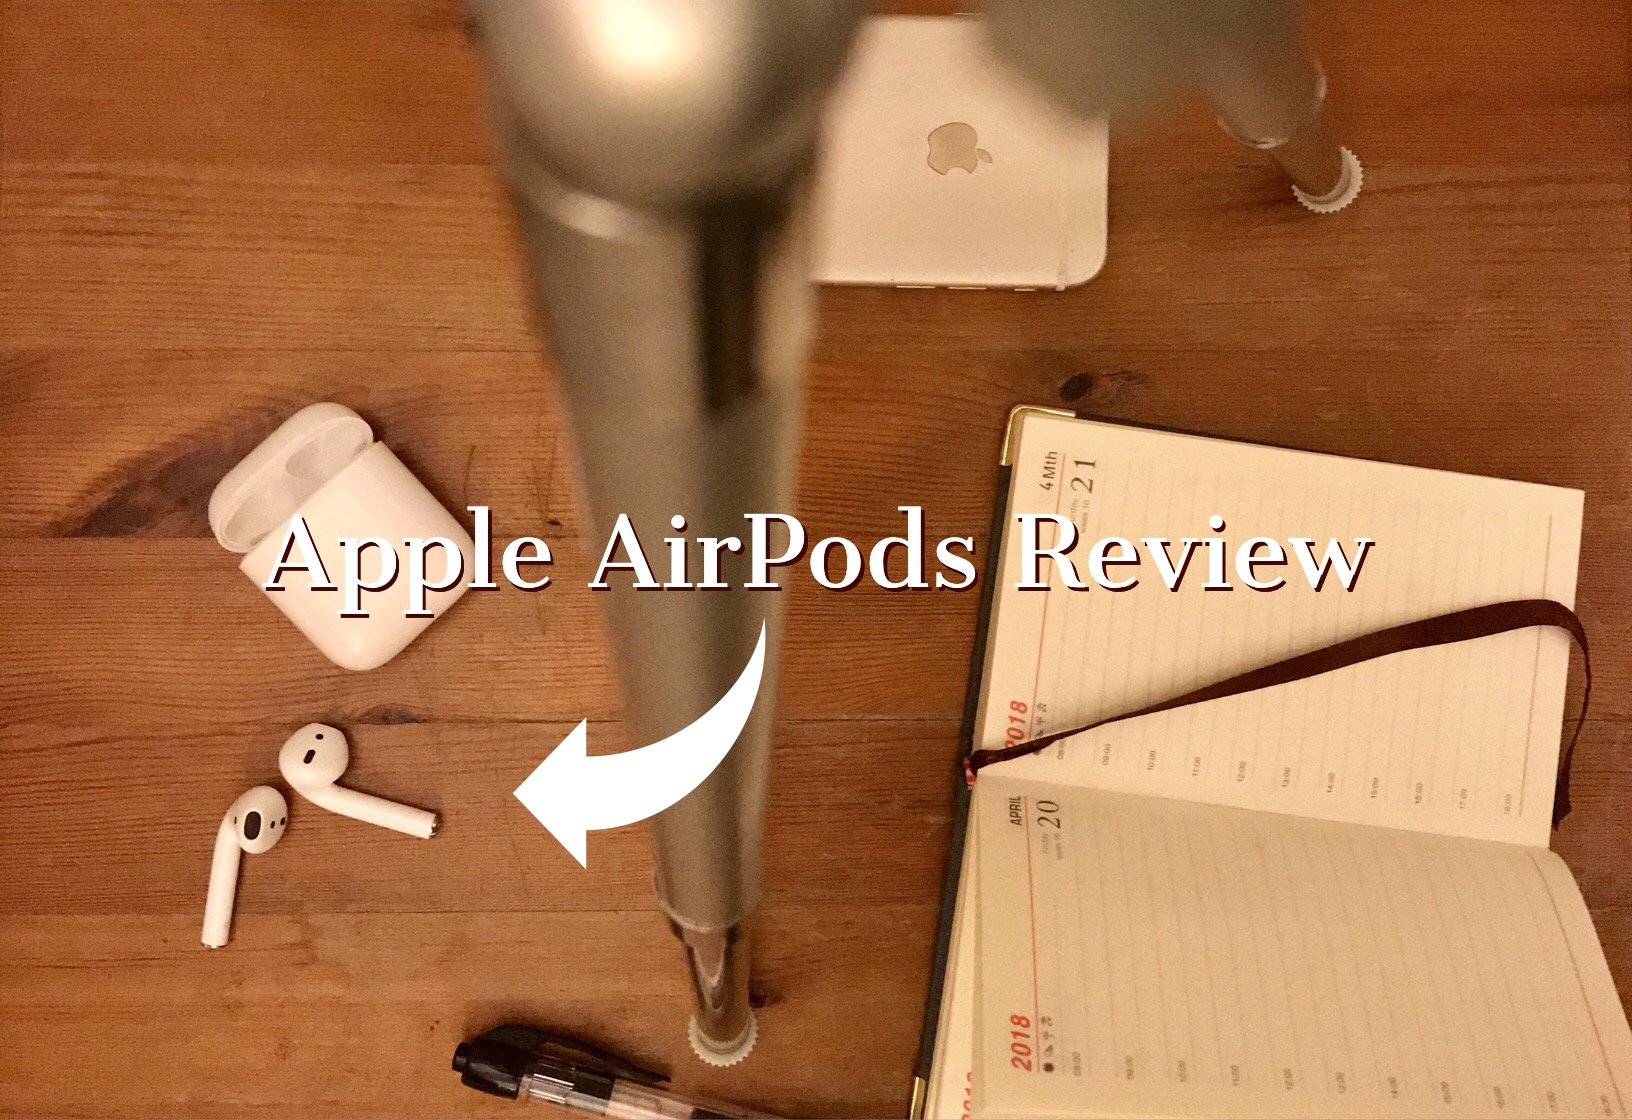 Apple AirPods reviewed!